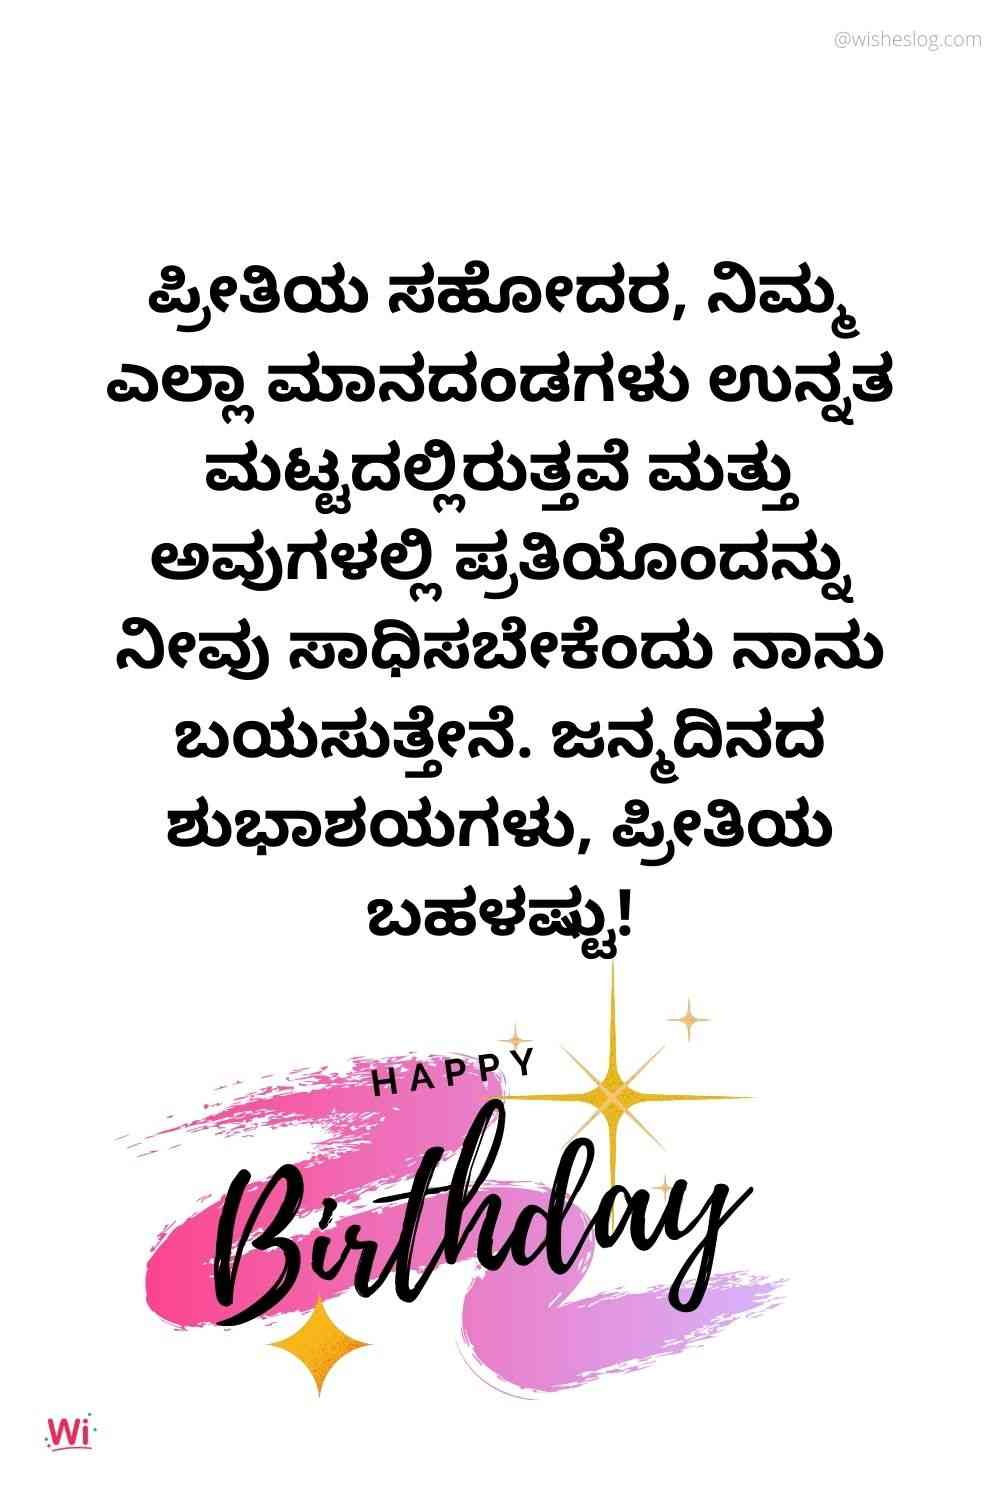 special birthday wishes for brother in kannada